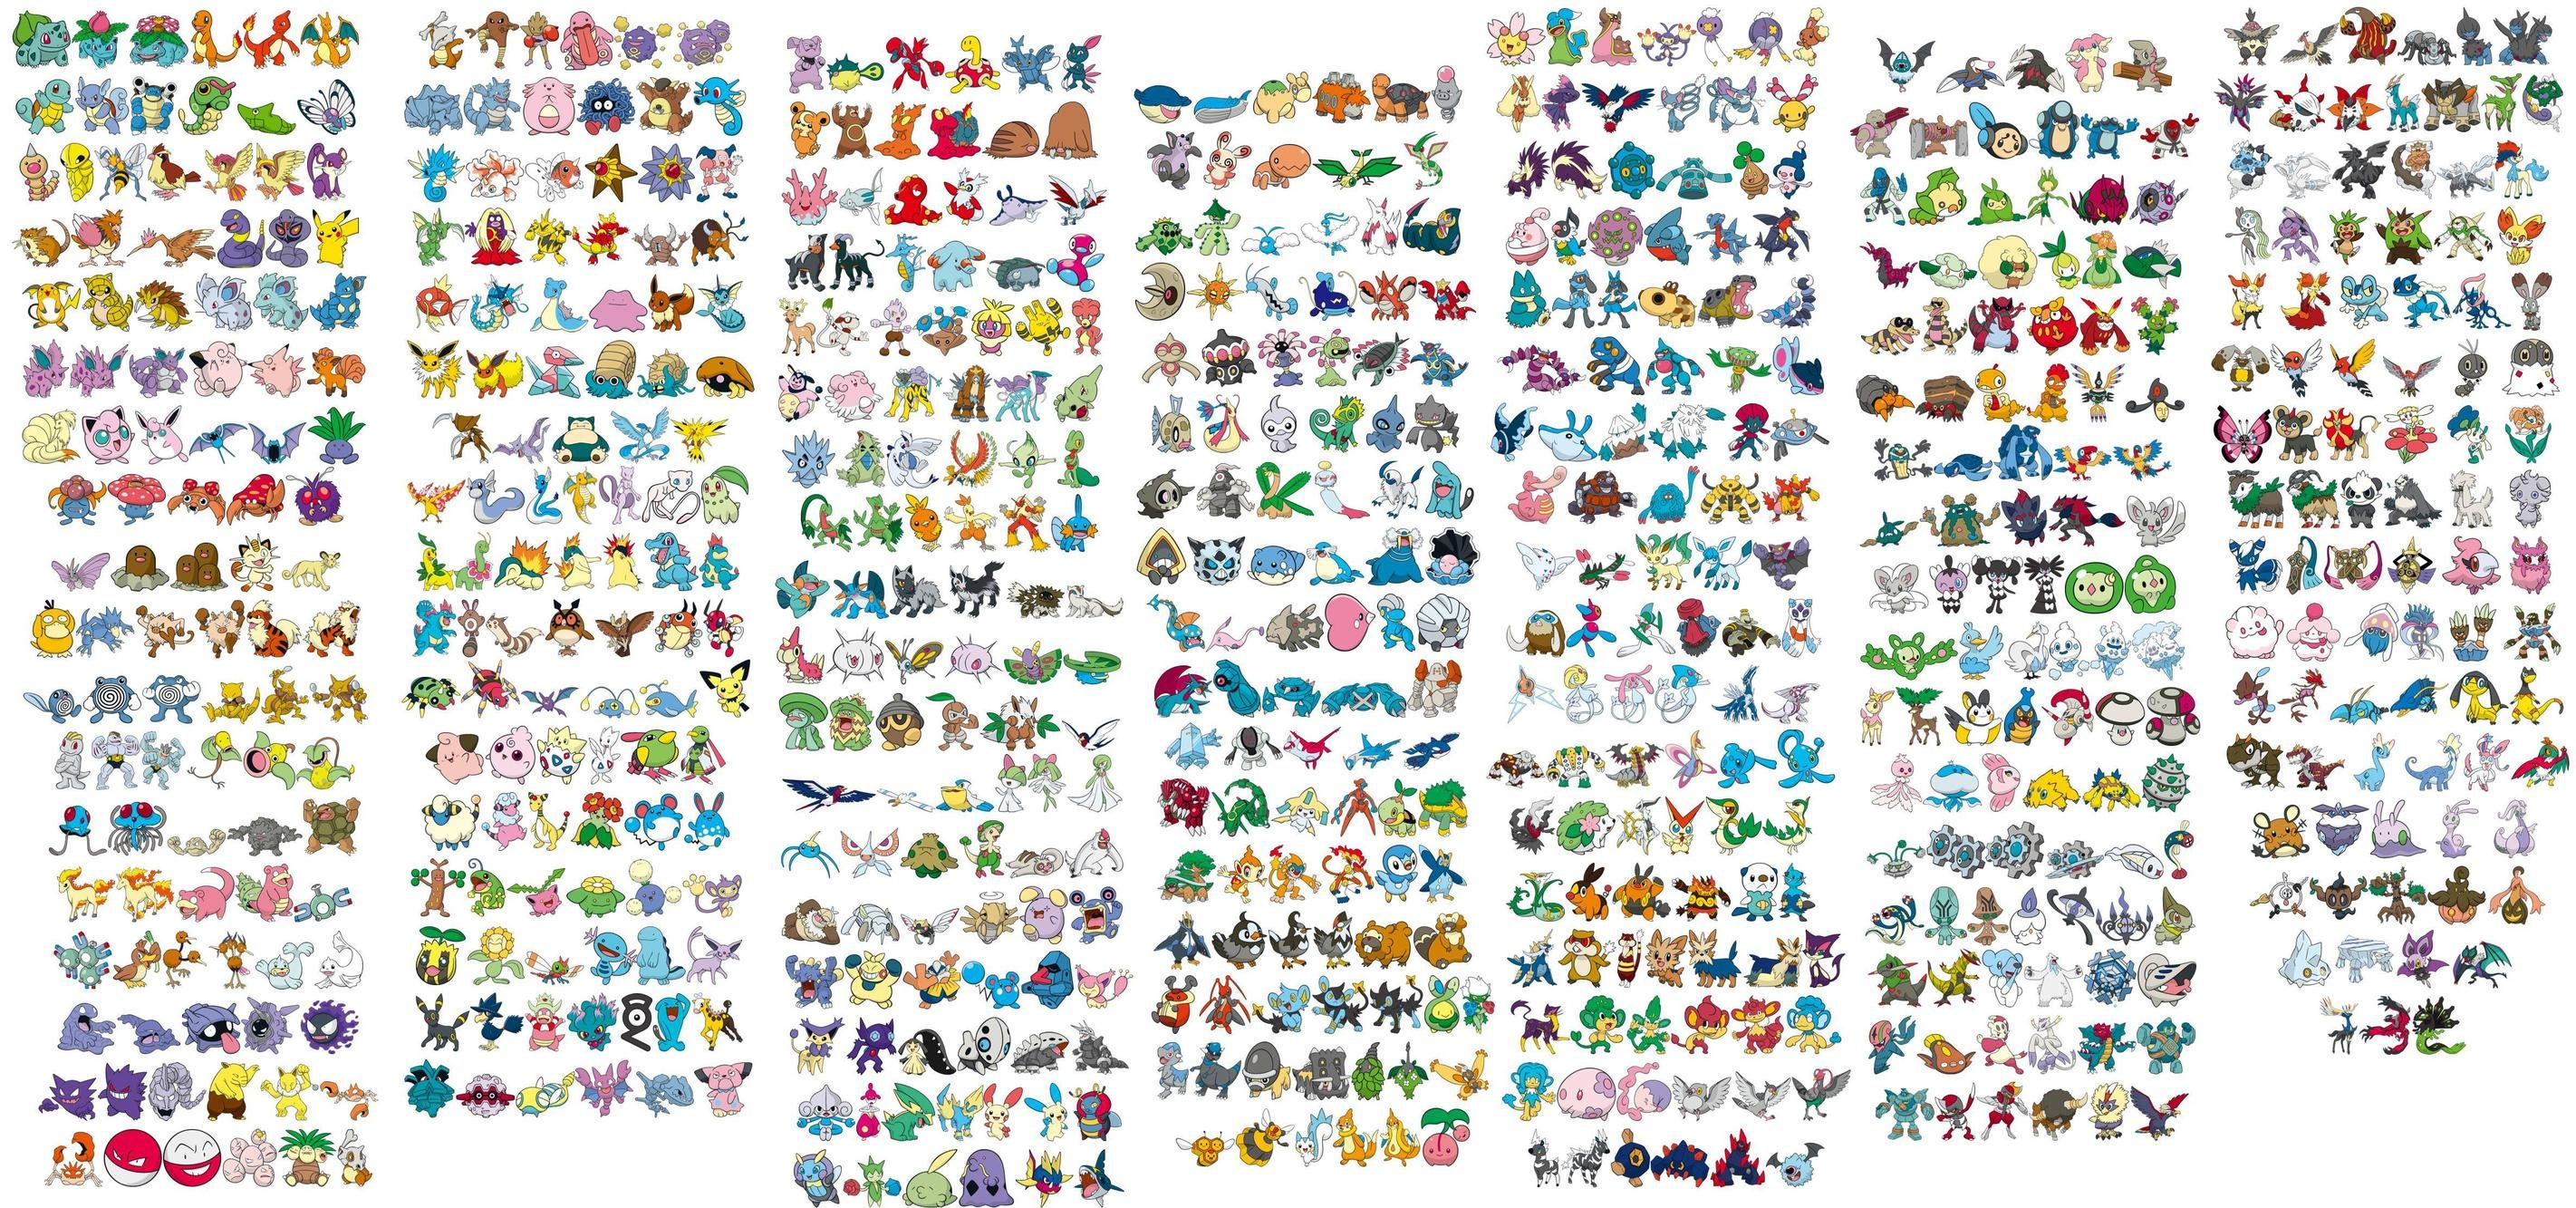 Image result for all pokemon